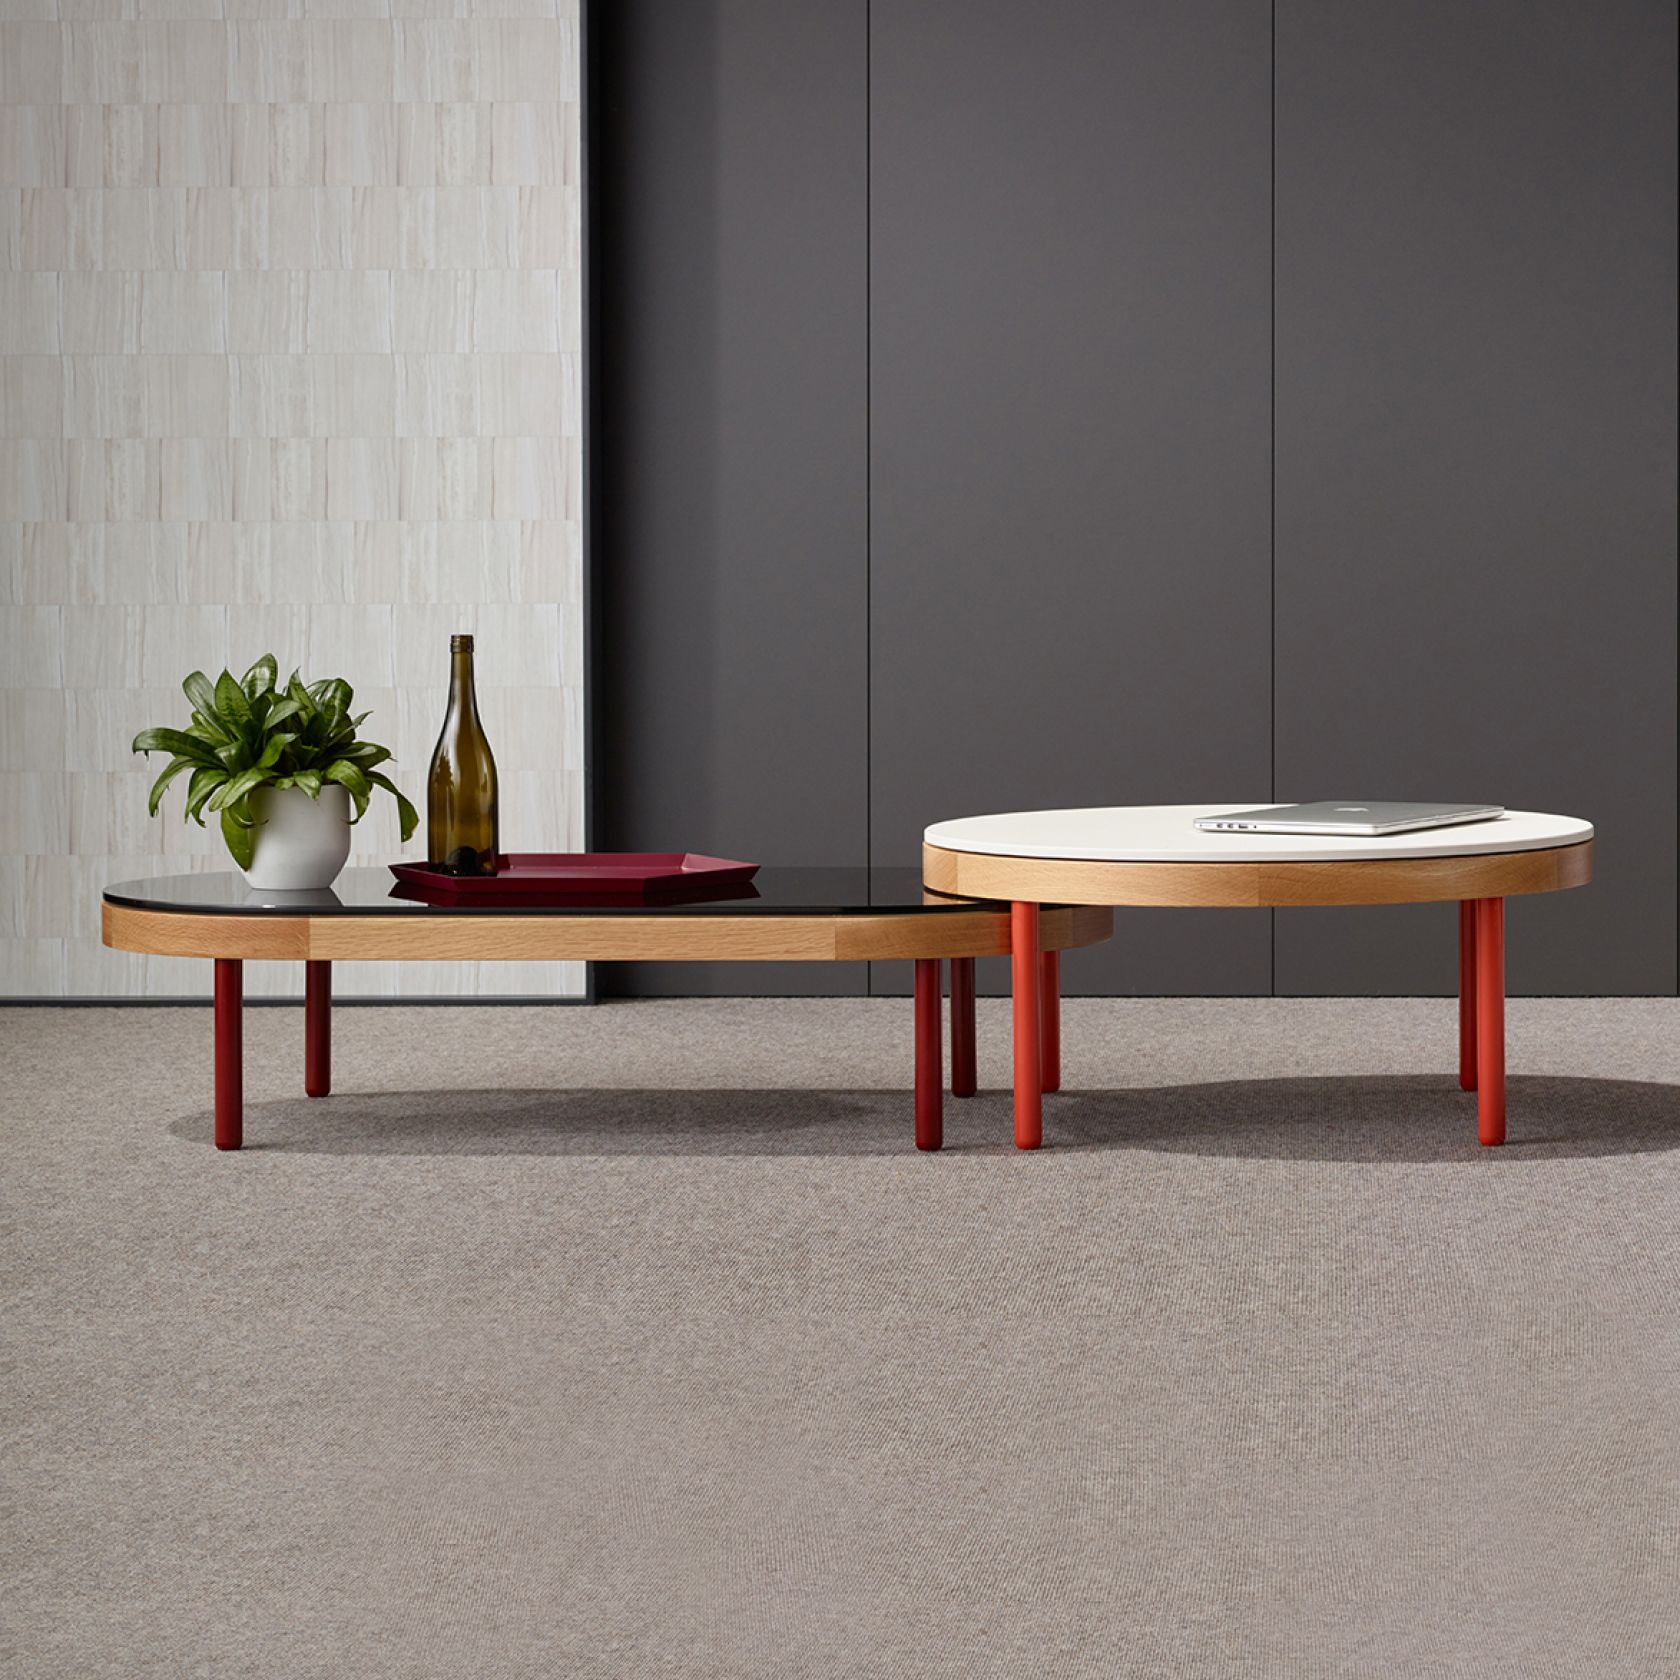 Goodwood Tables